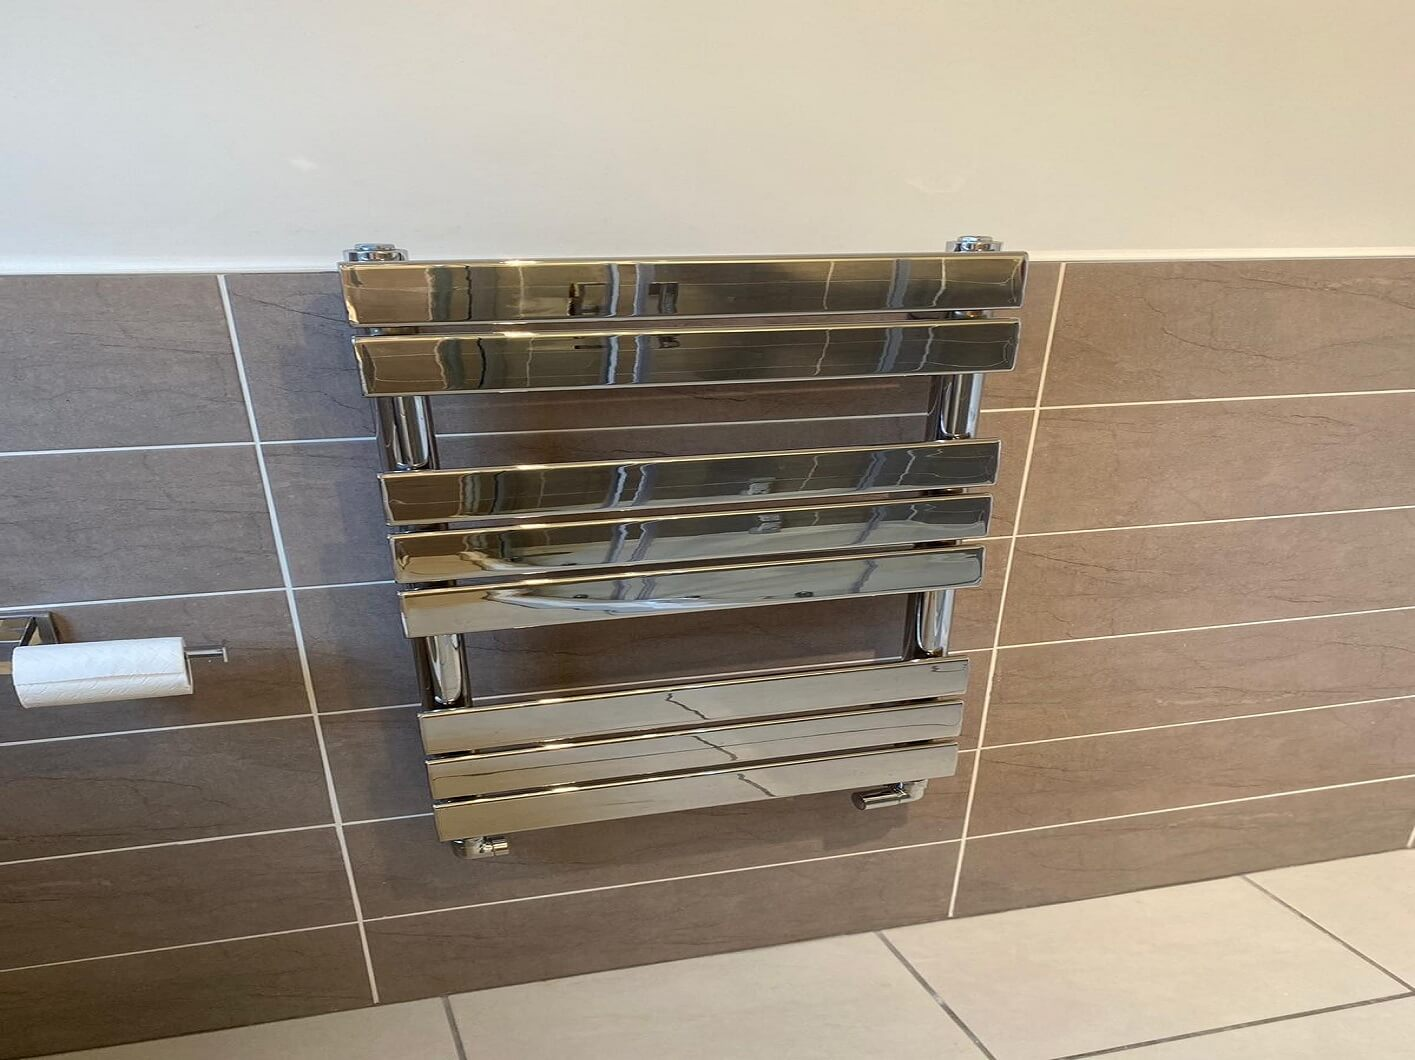 Heated Towel Rail Fitters Medway - Reliable Plumbers & Heating Engineers Ltd are Gas Safe Registered-114518- We are Fighting for a Gas Safe Nation